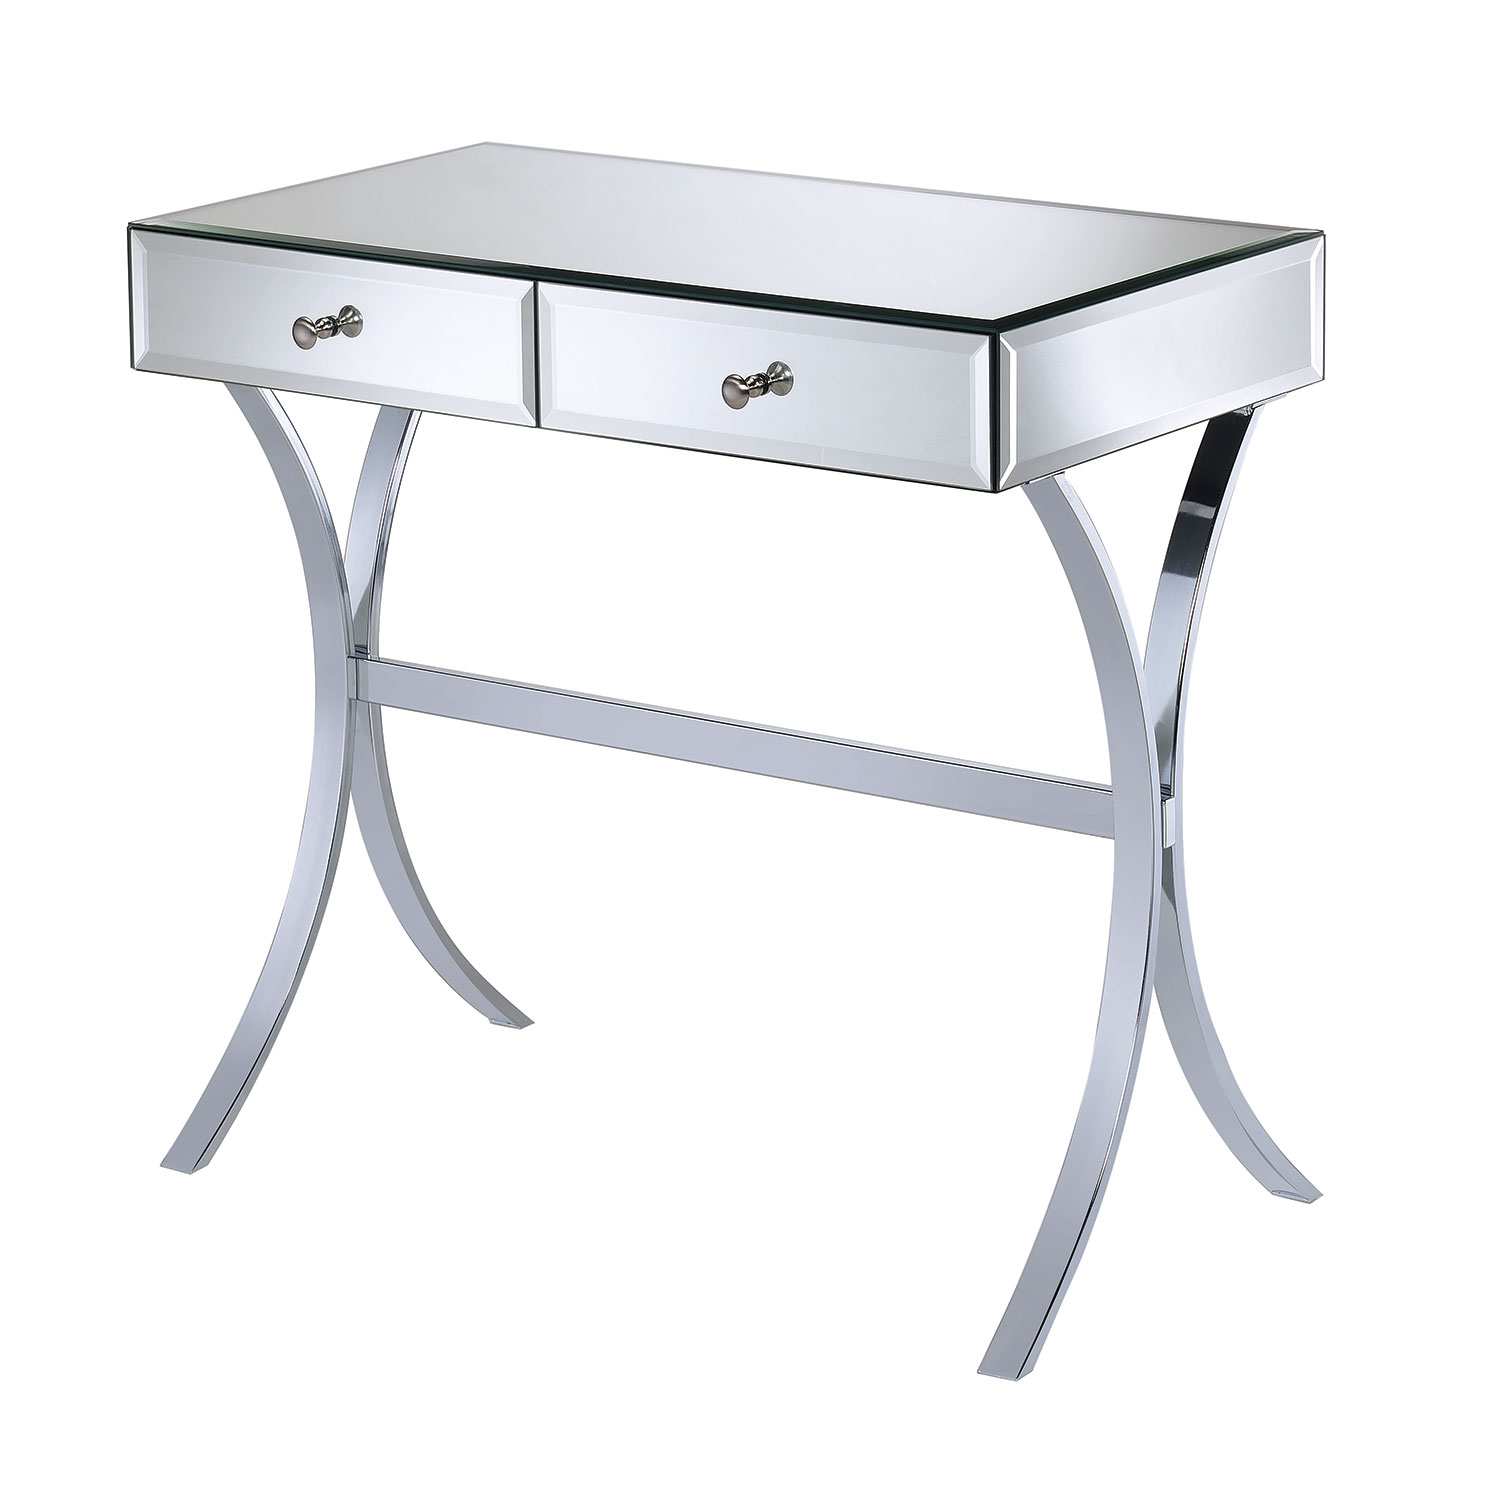 coaster accent tables mirror console table value city furniture products color coas and cabinets beach bathroom decor small modern side replacement cushions for patio threshold